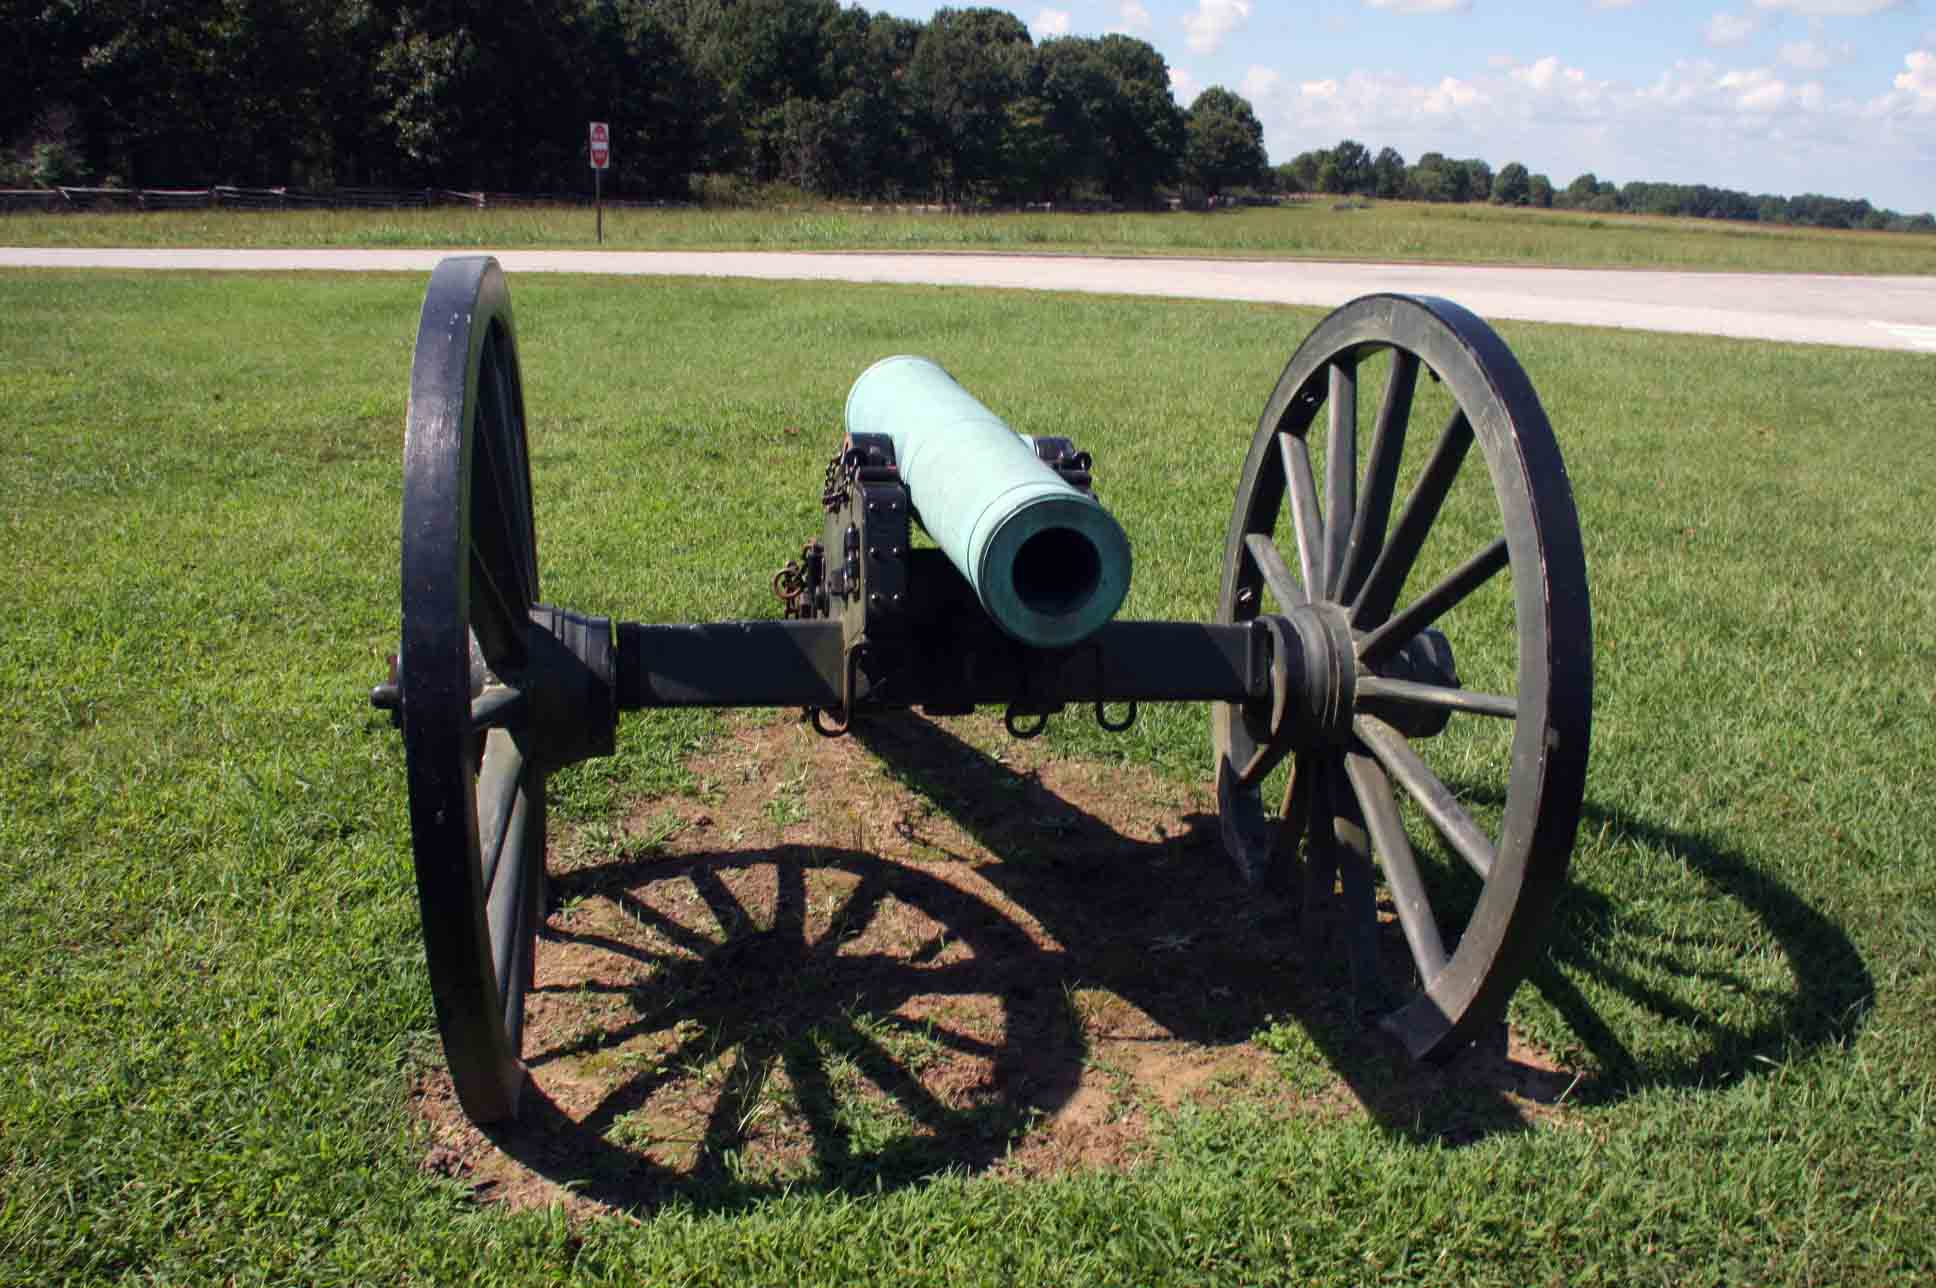 6-pounder bronze field guns, Model of 184, Reg # 192, click photo to enlarge.